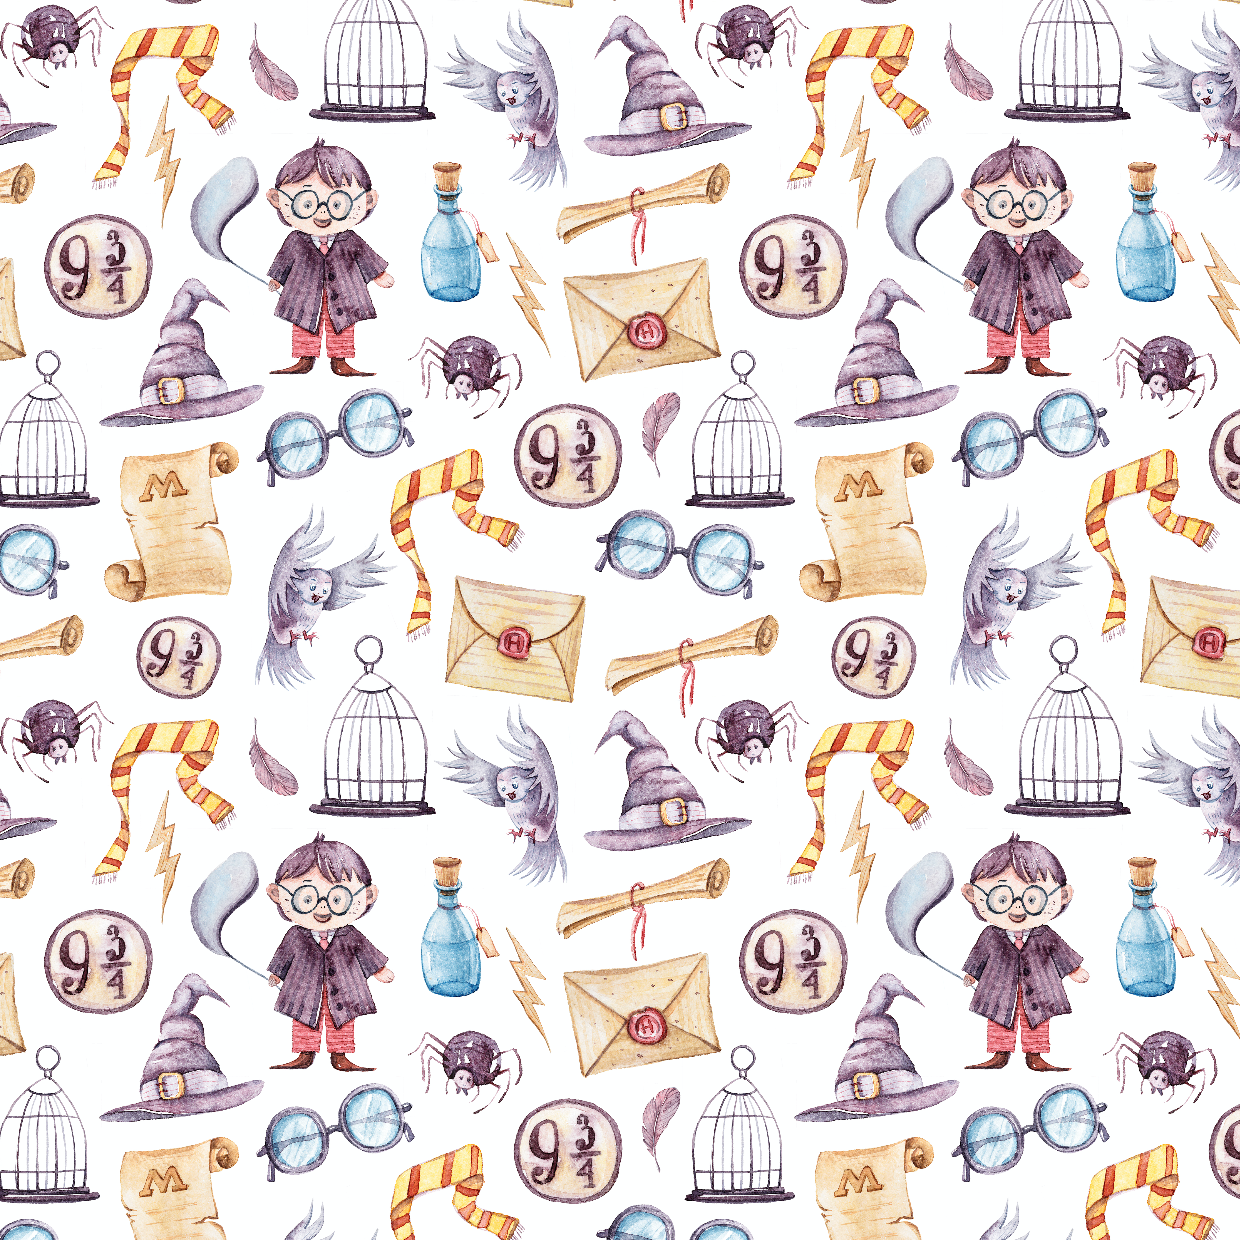 PRE ORDER - Wizard Land White - Digital Fabric Print